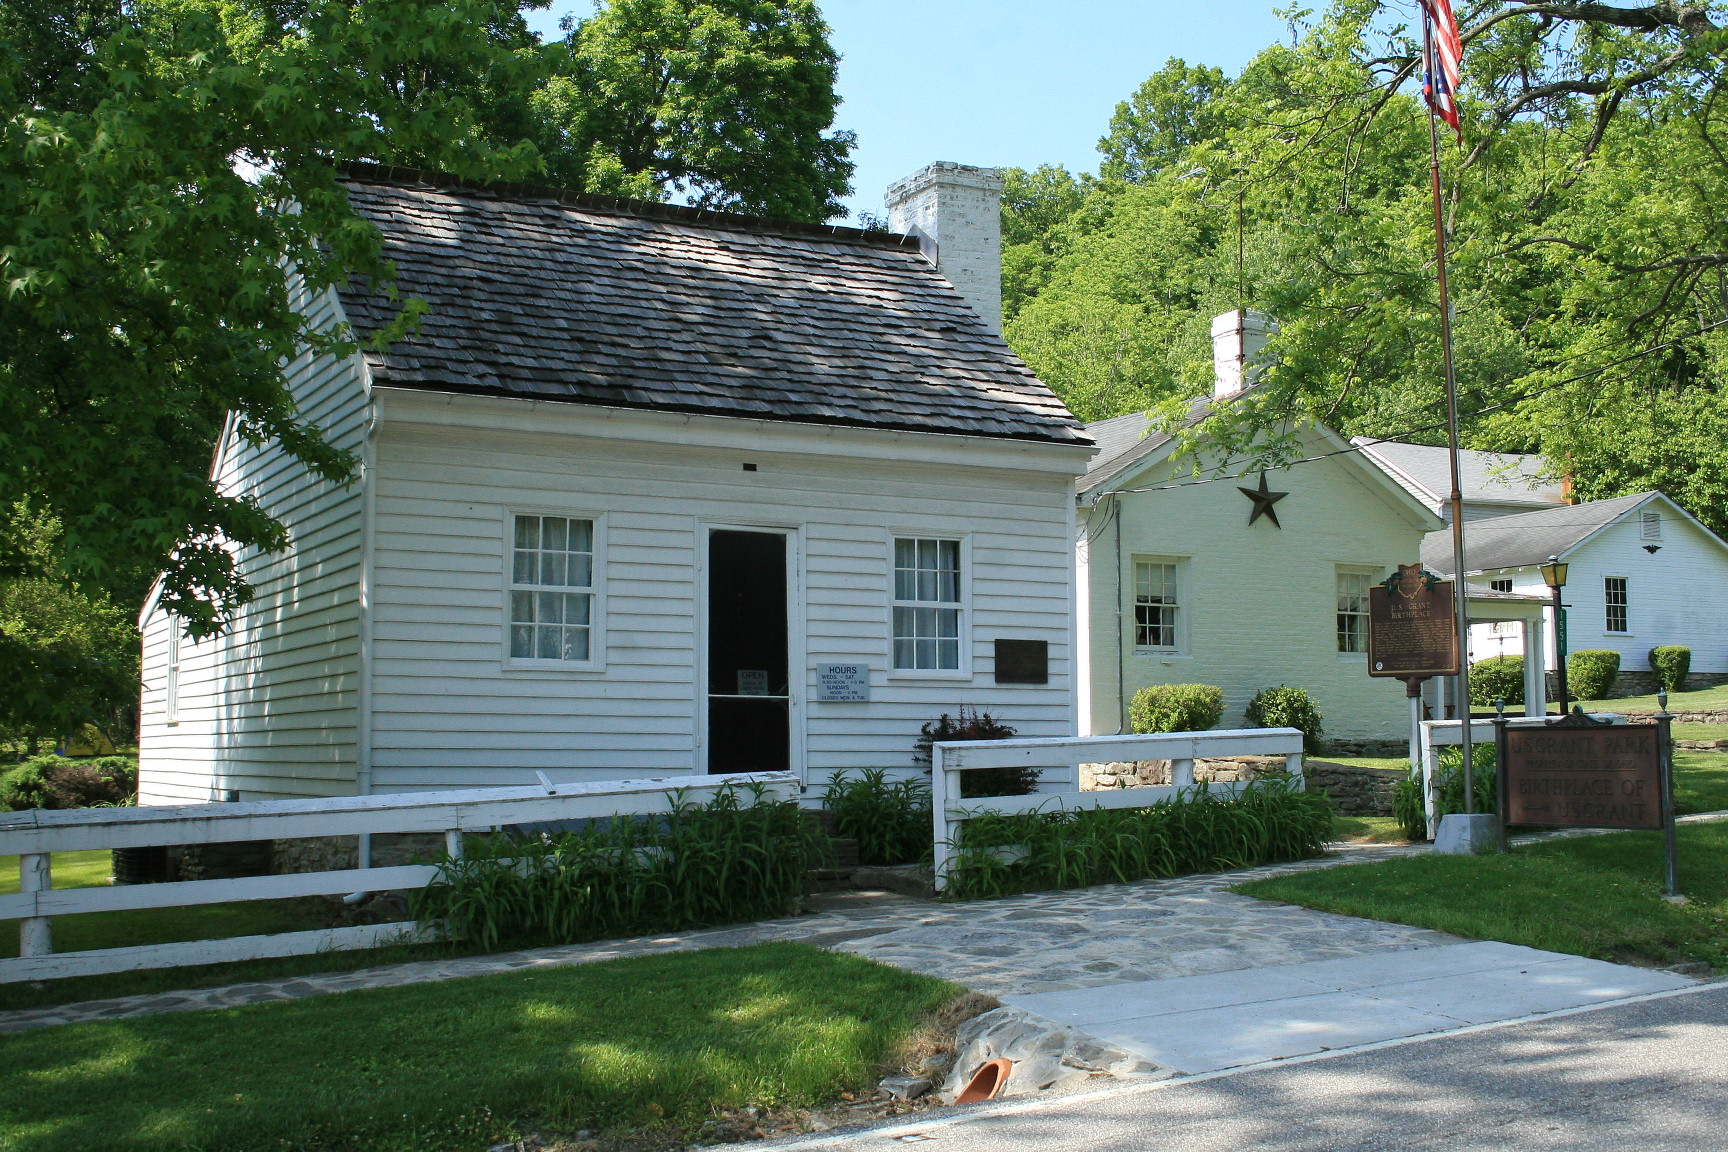 ulysses s grant 1822 1885 biography familypedia fandom grantbirthplace ulysses grant birthplace